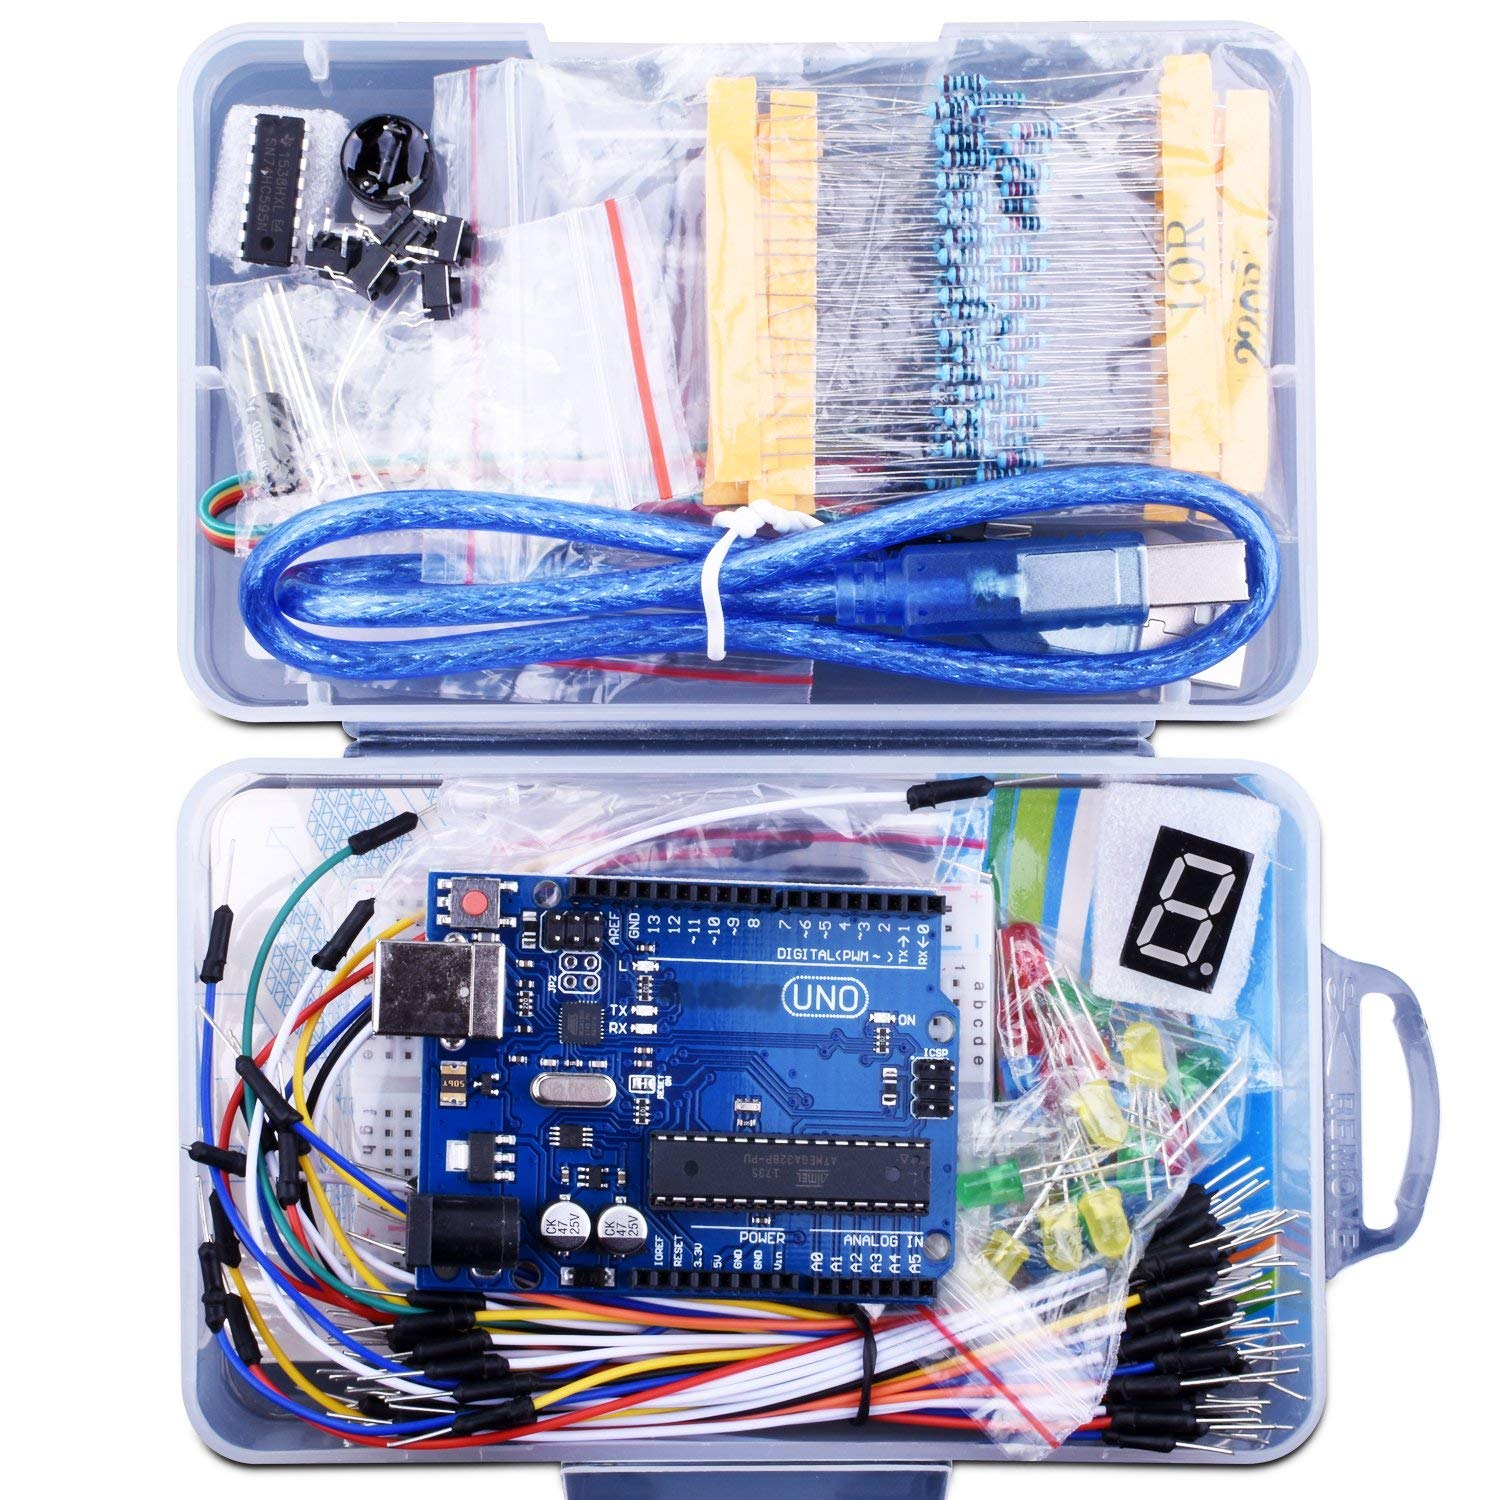 Clone Kit 147 Piece Arduino Clone Kit For 16 Boing Boing